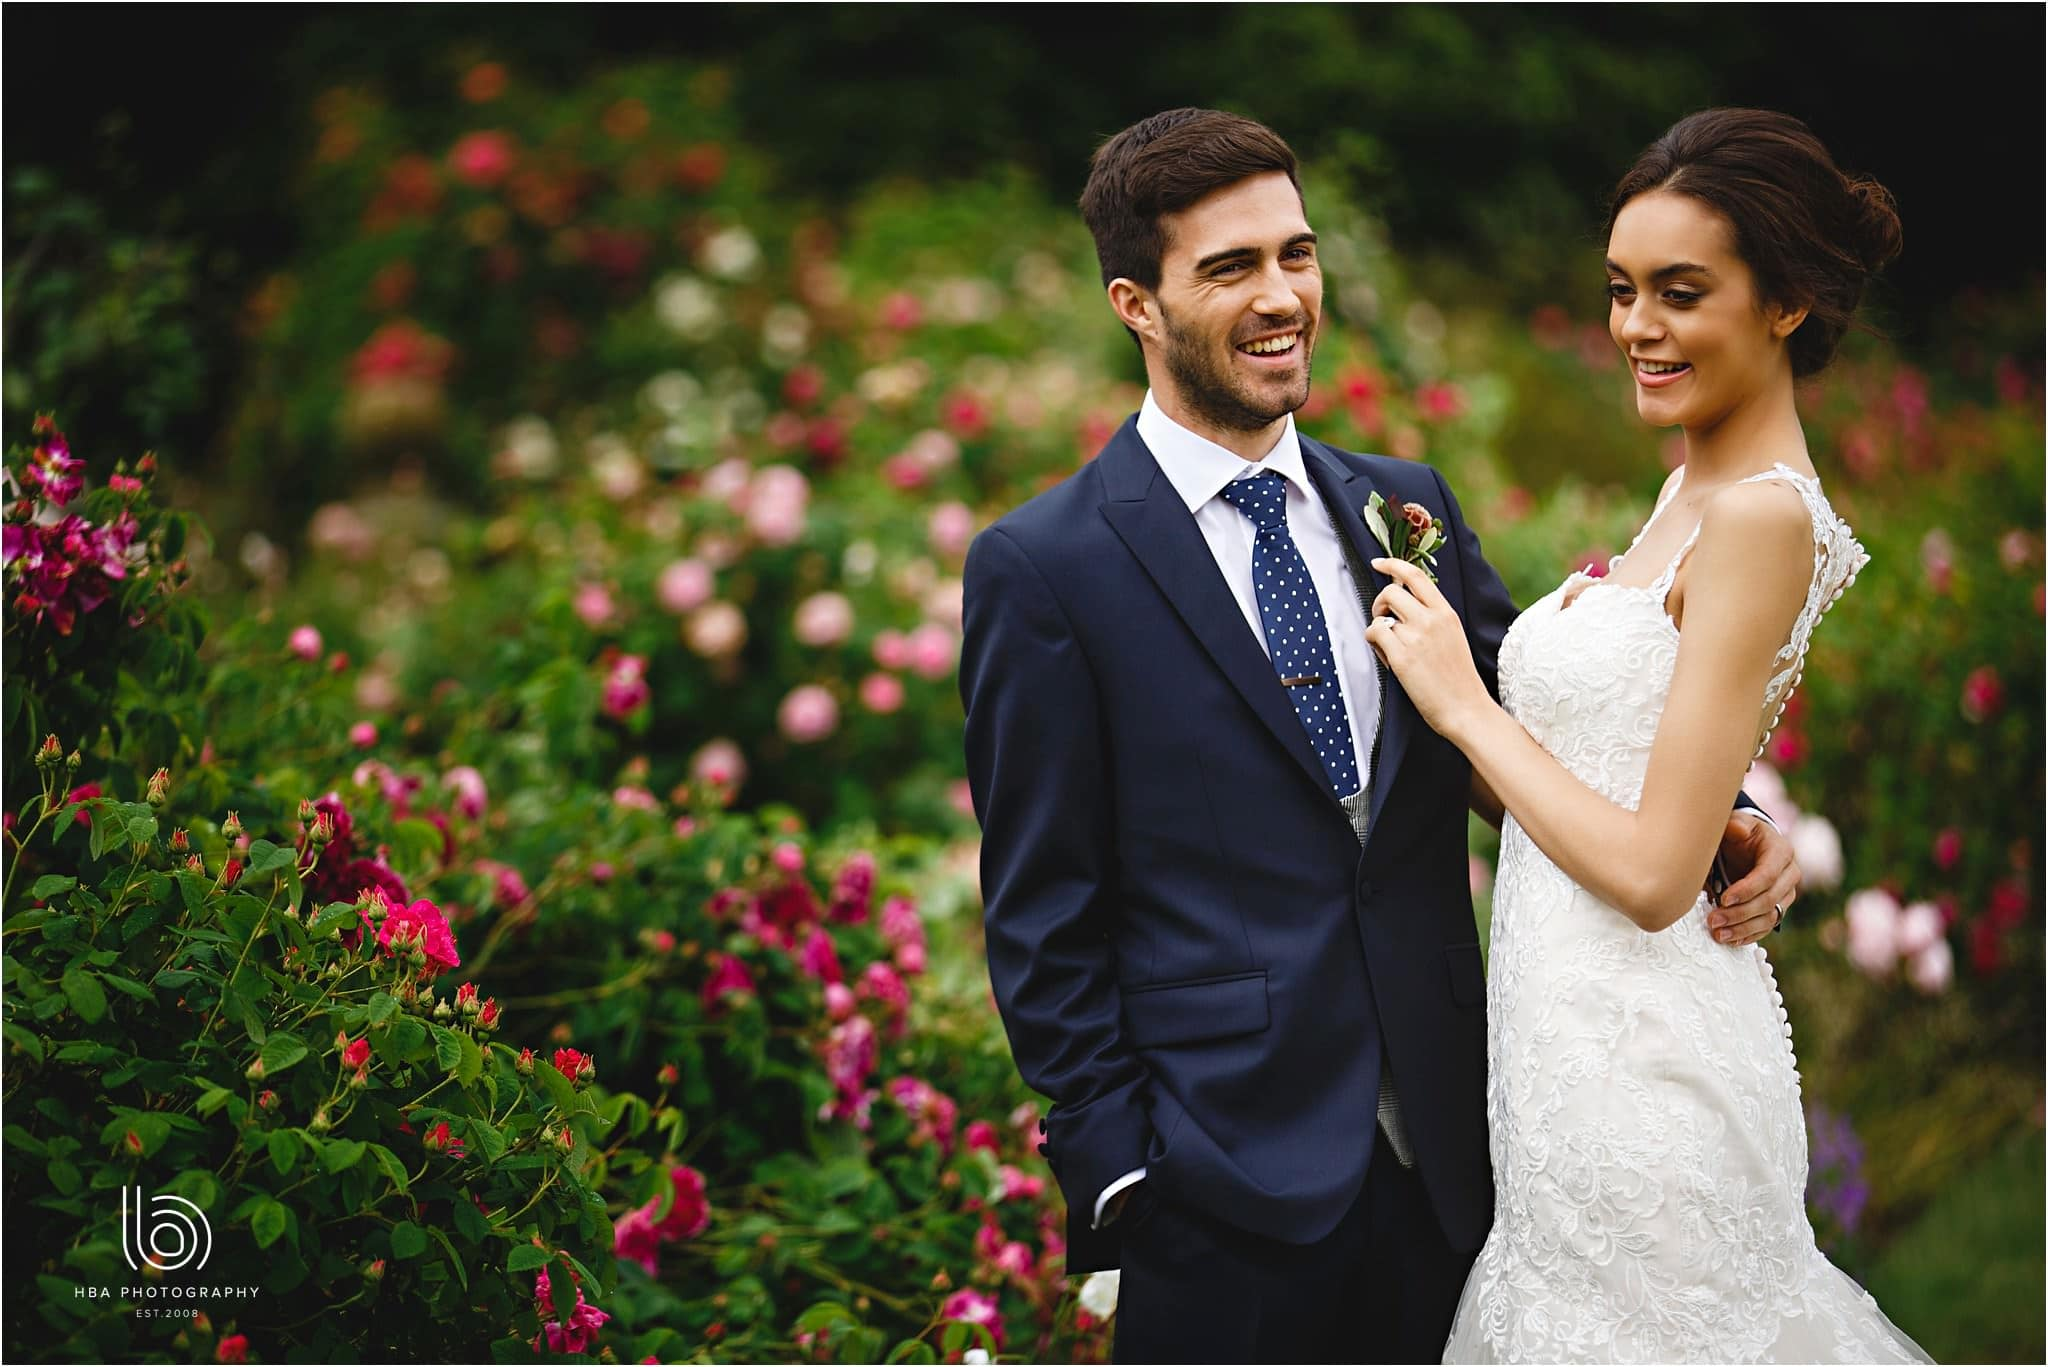 the bride and groom laughing in the rose garden